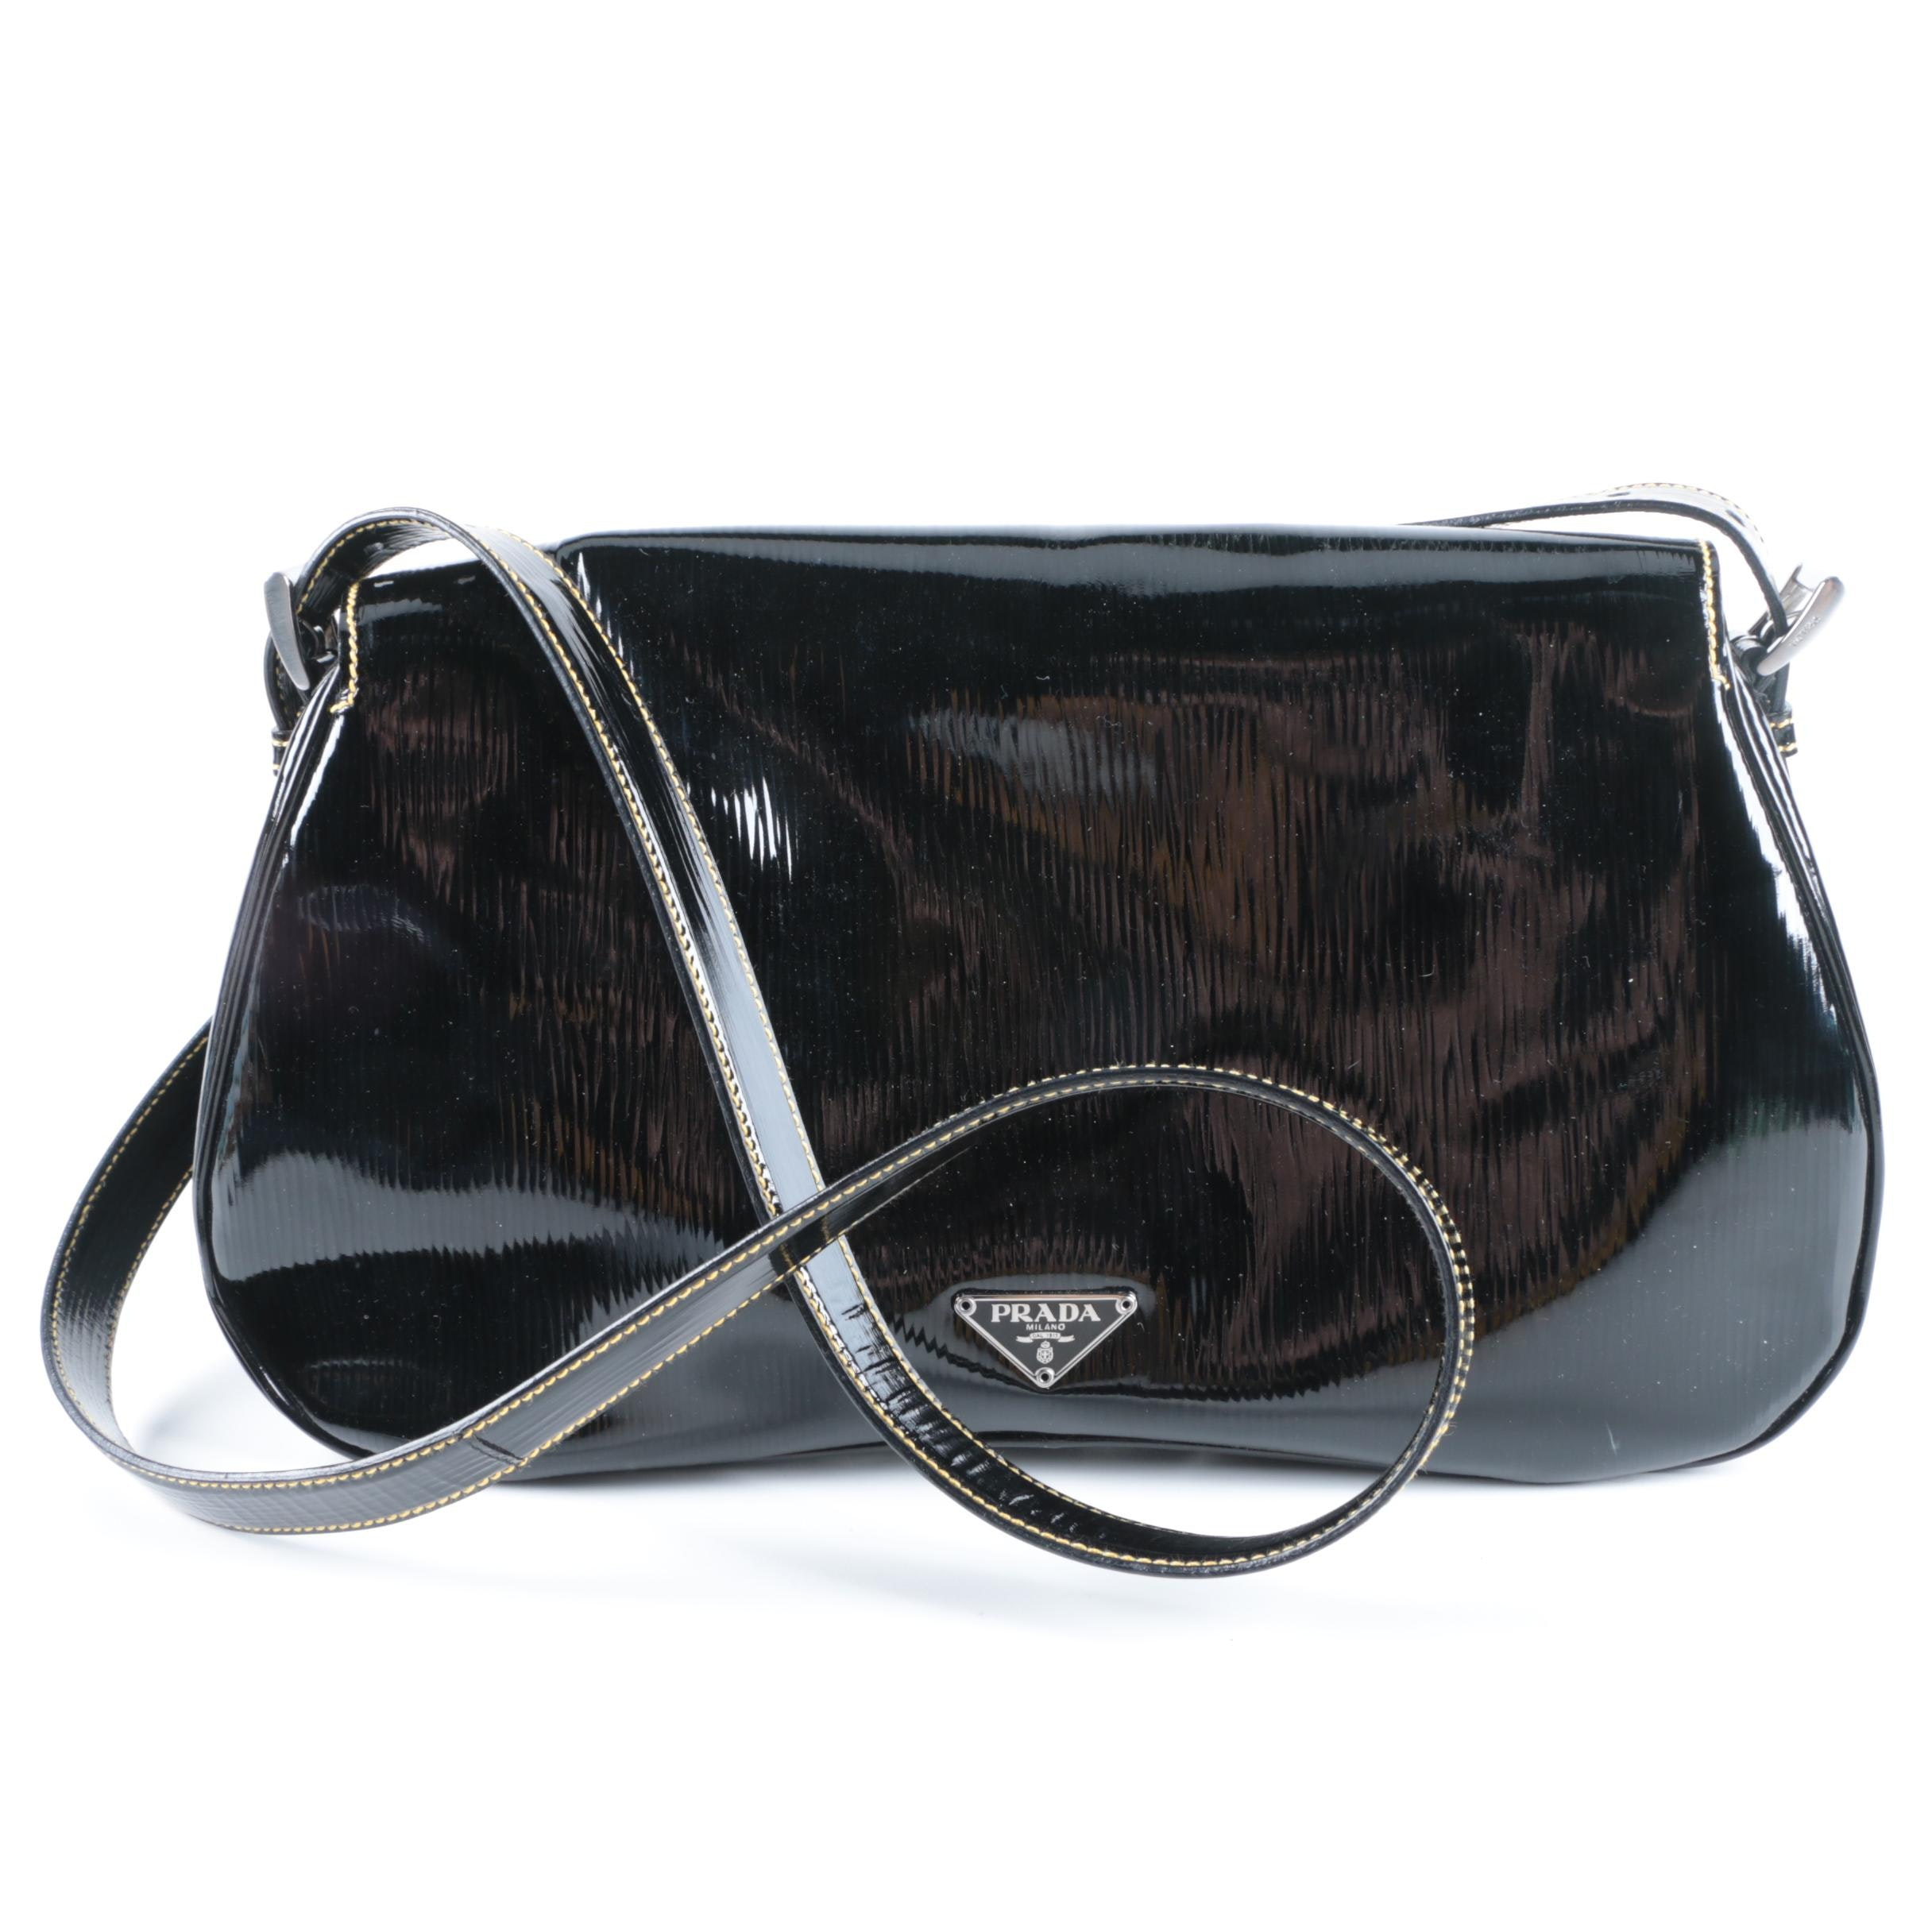 Prada Black Patent Vitello Move Leather Handbag